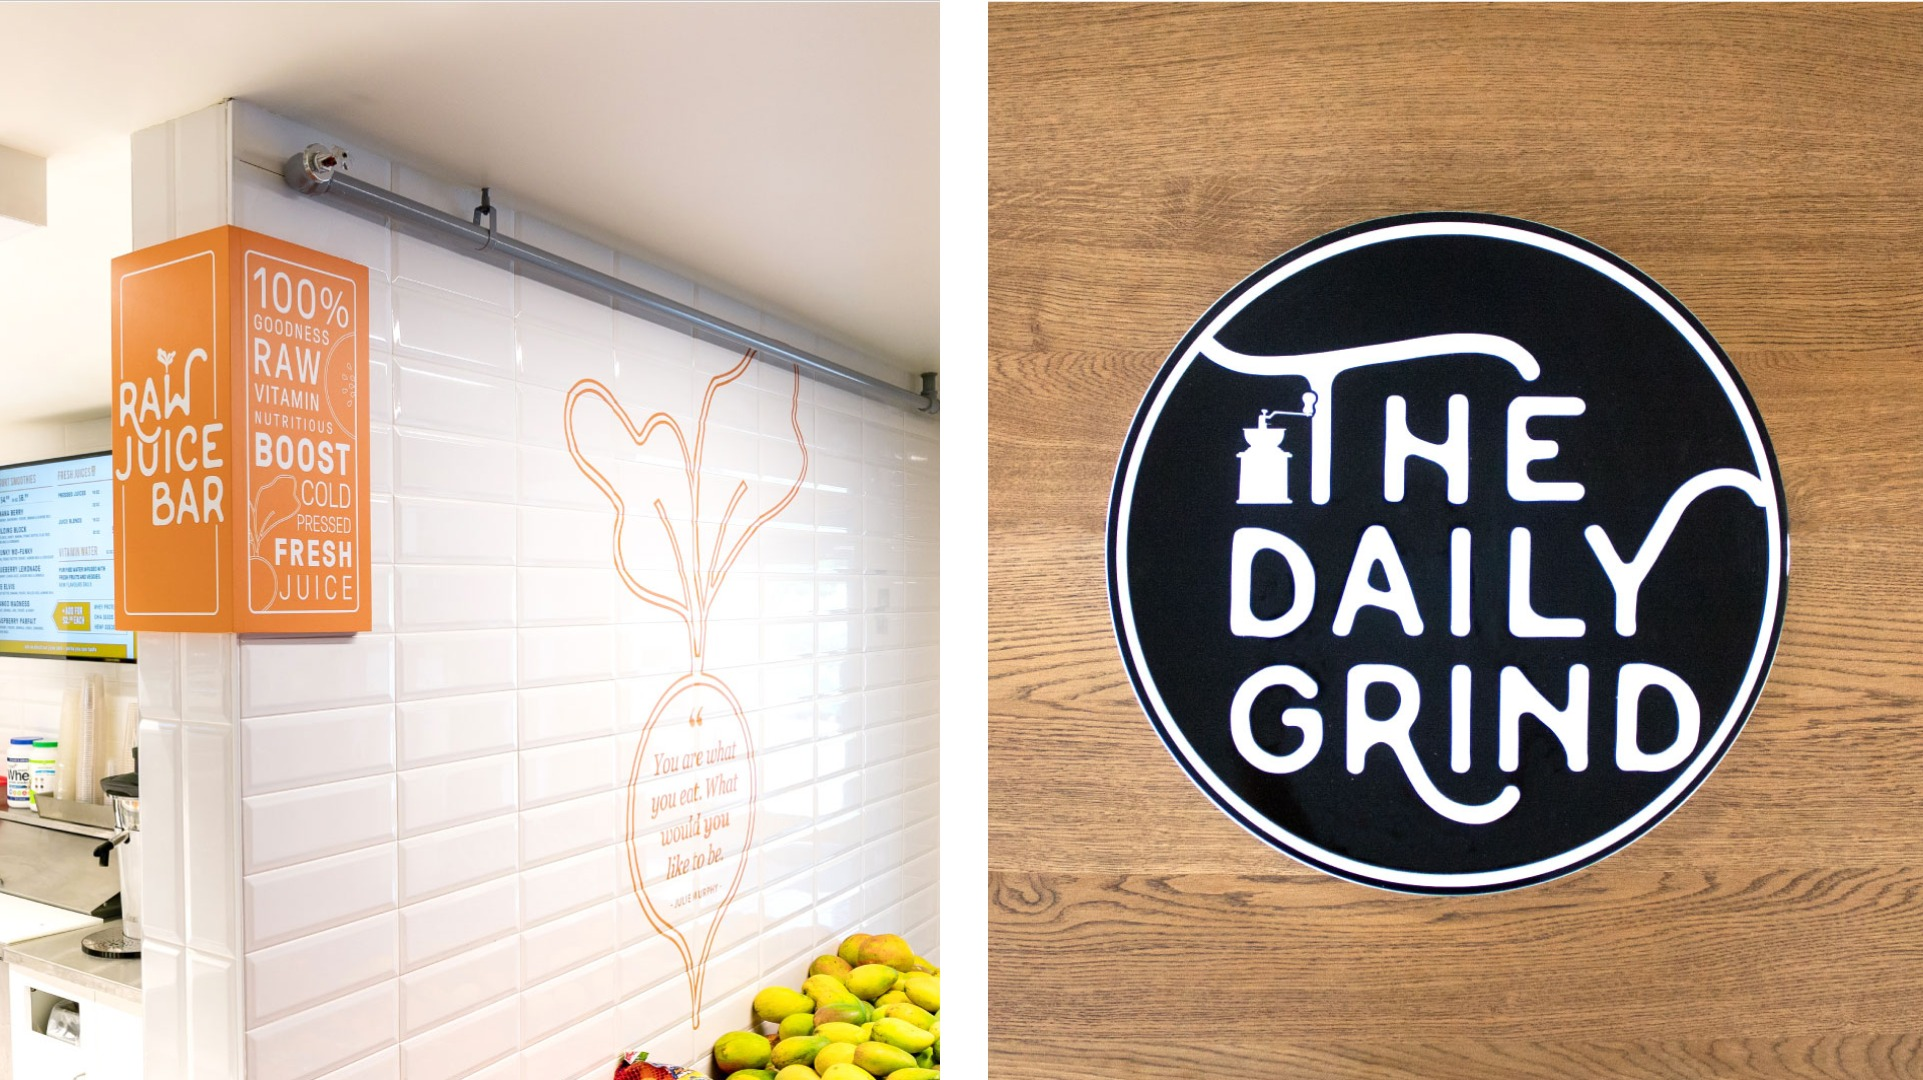 Hurley's Raw Juice Bar & The Daily Grind